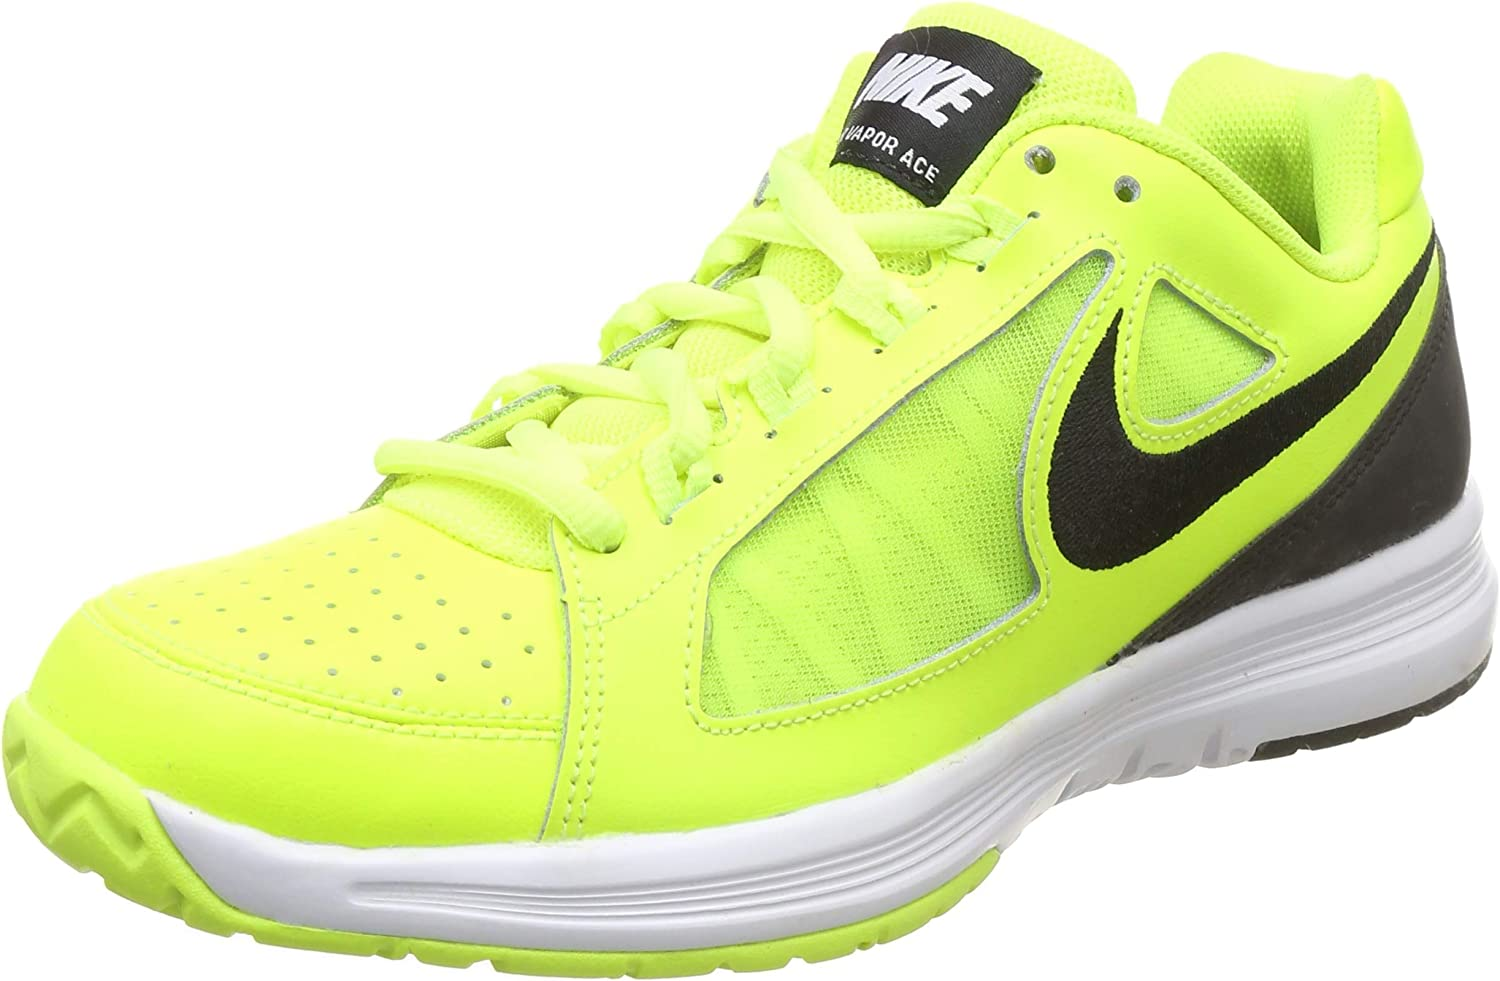 Nike Men's Air Vapor Ace Tennis shoes